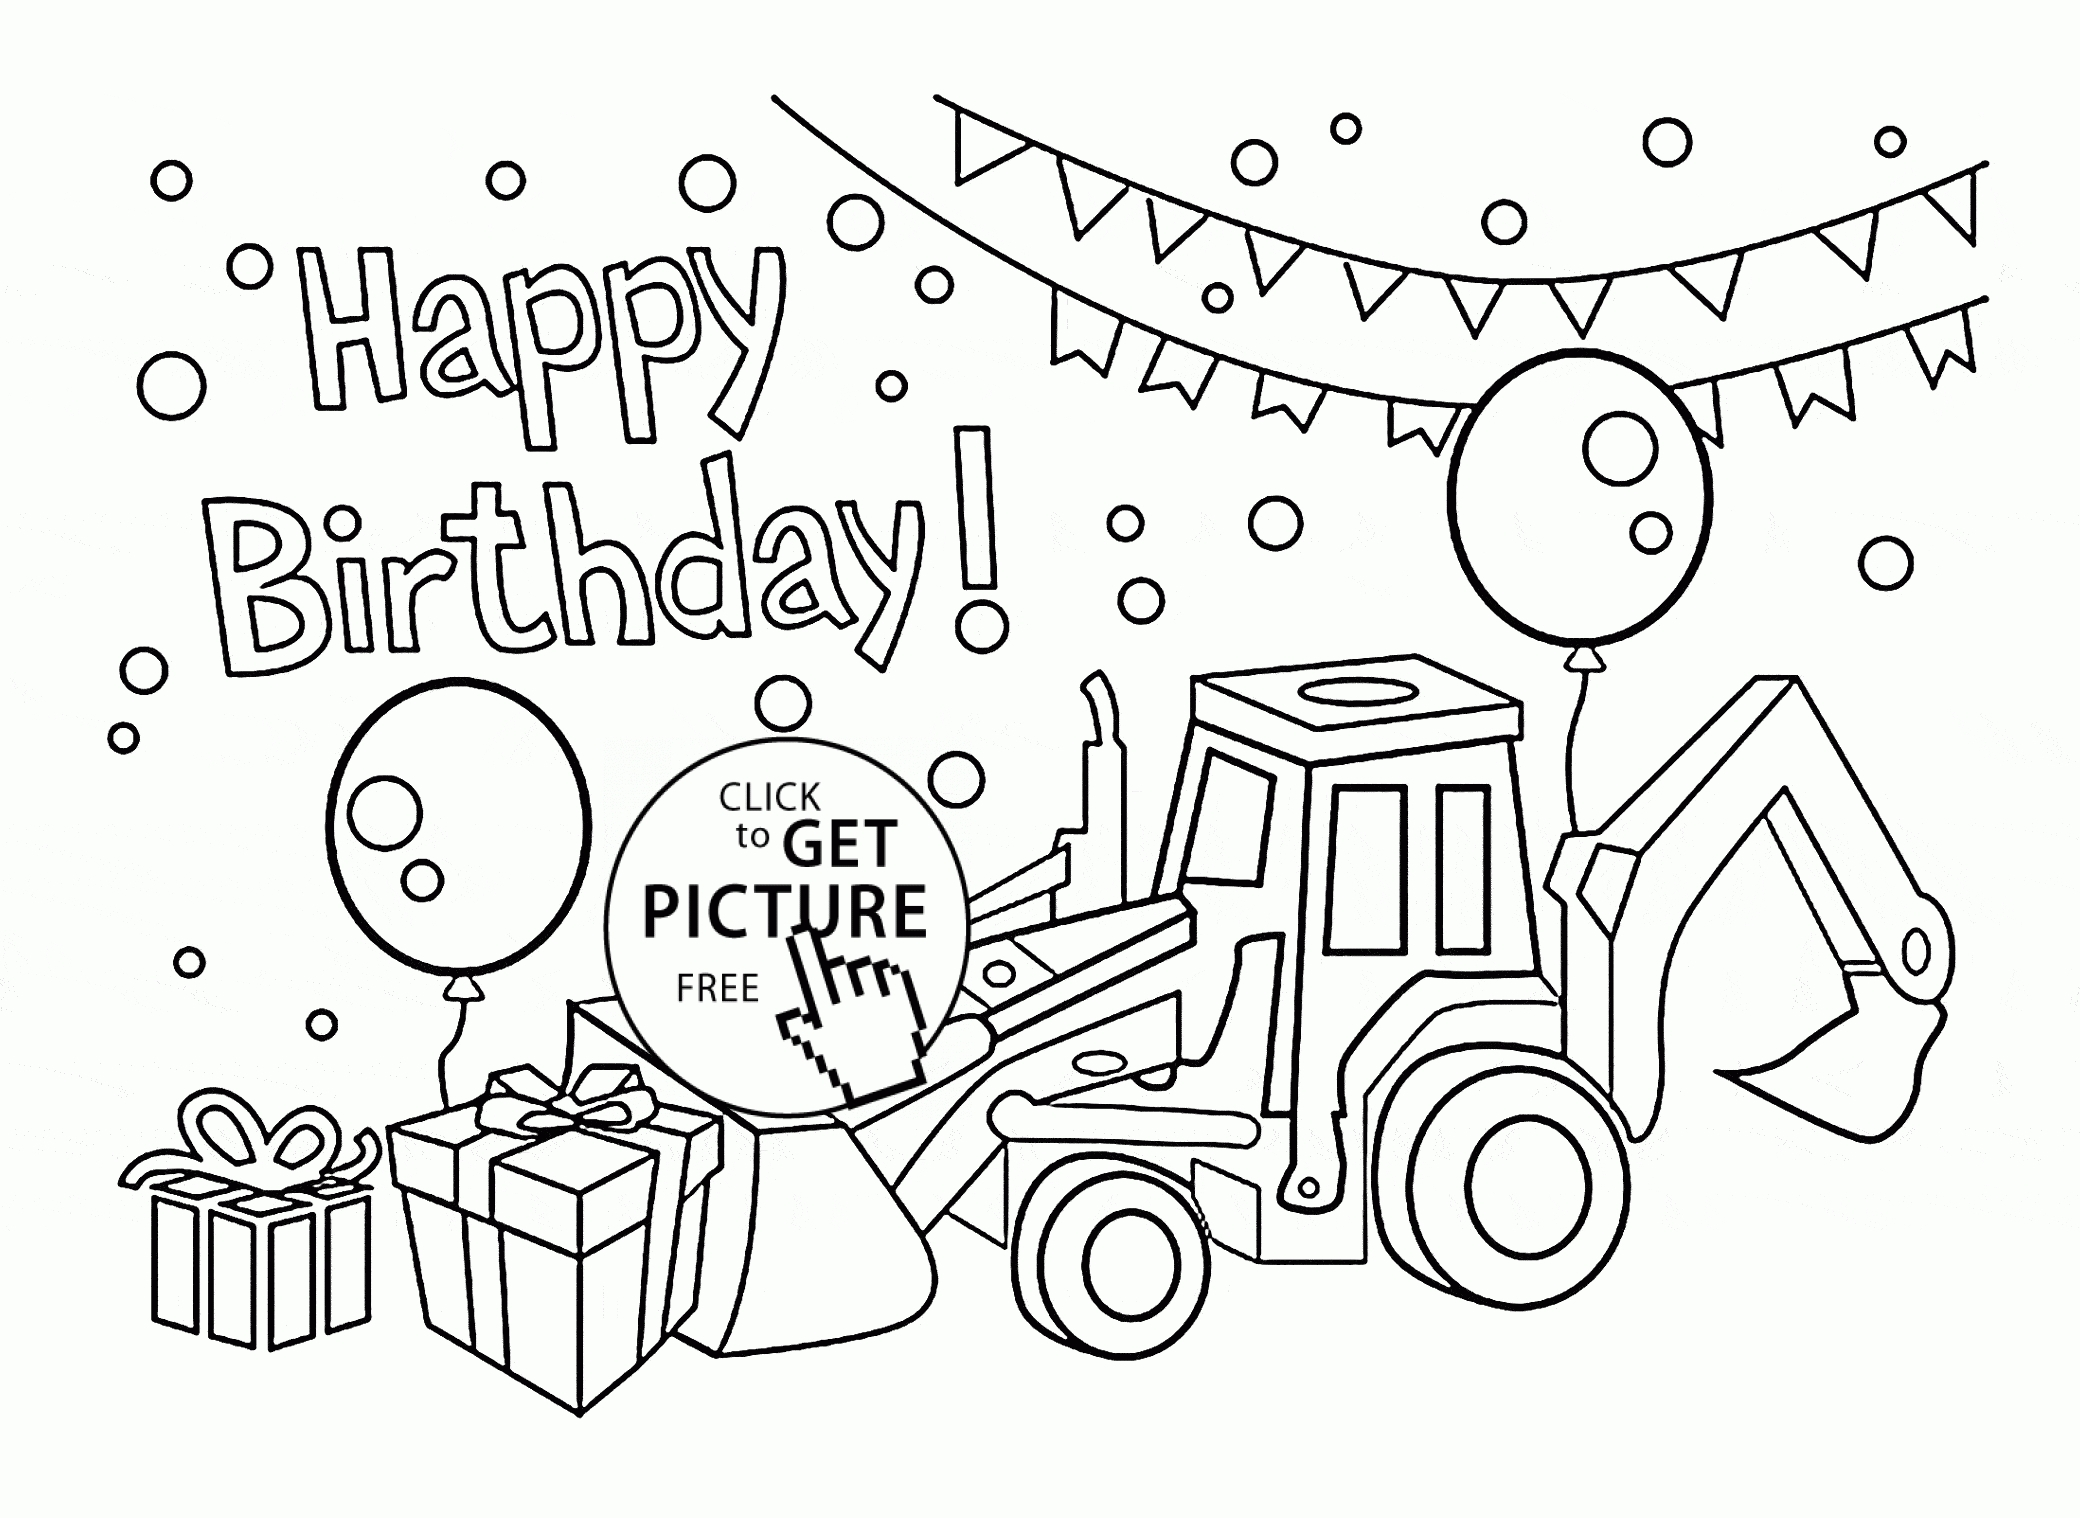 Funny And Printable Birthday Cards For Kids FREE - Candacefaber